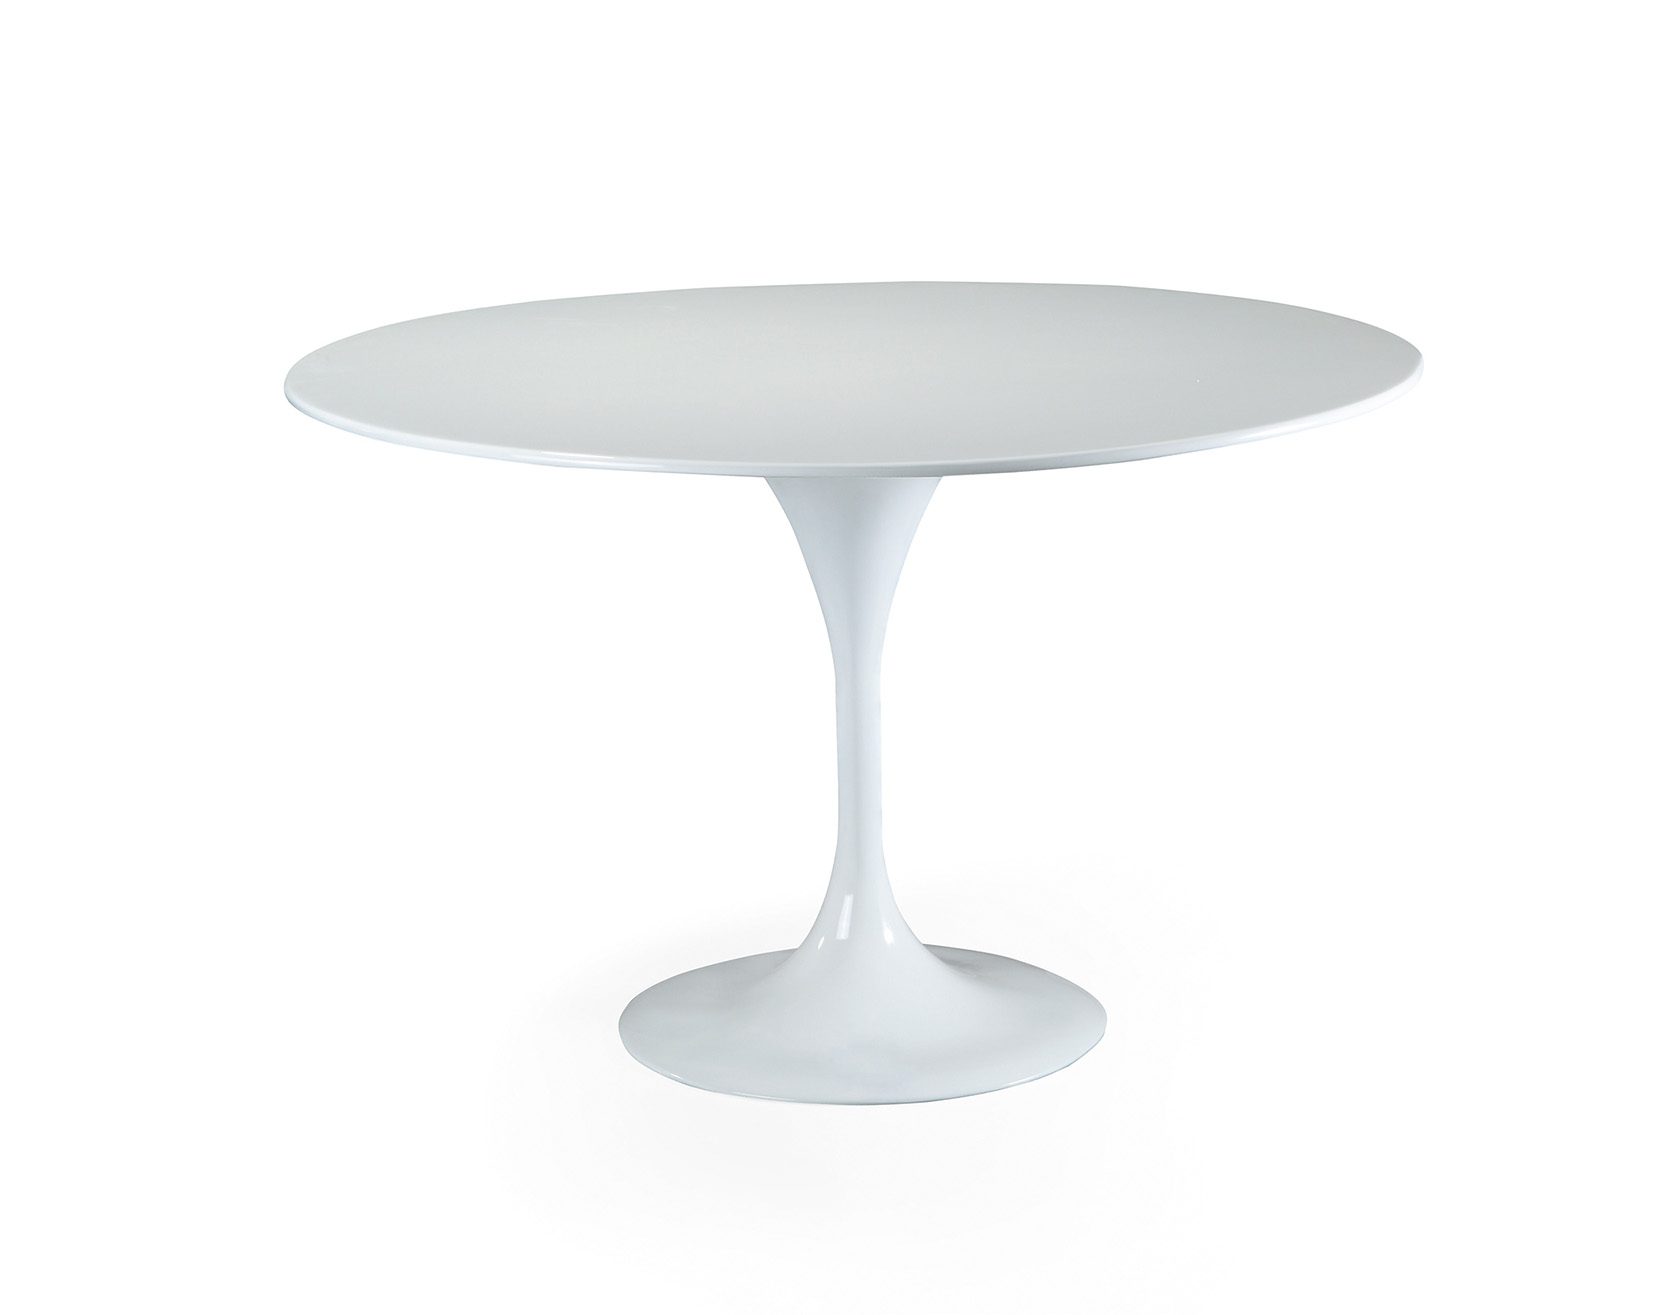 HT012 Oval Shape Marble Table